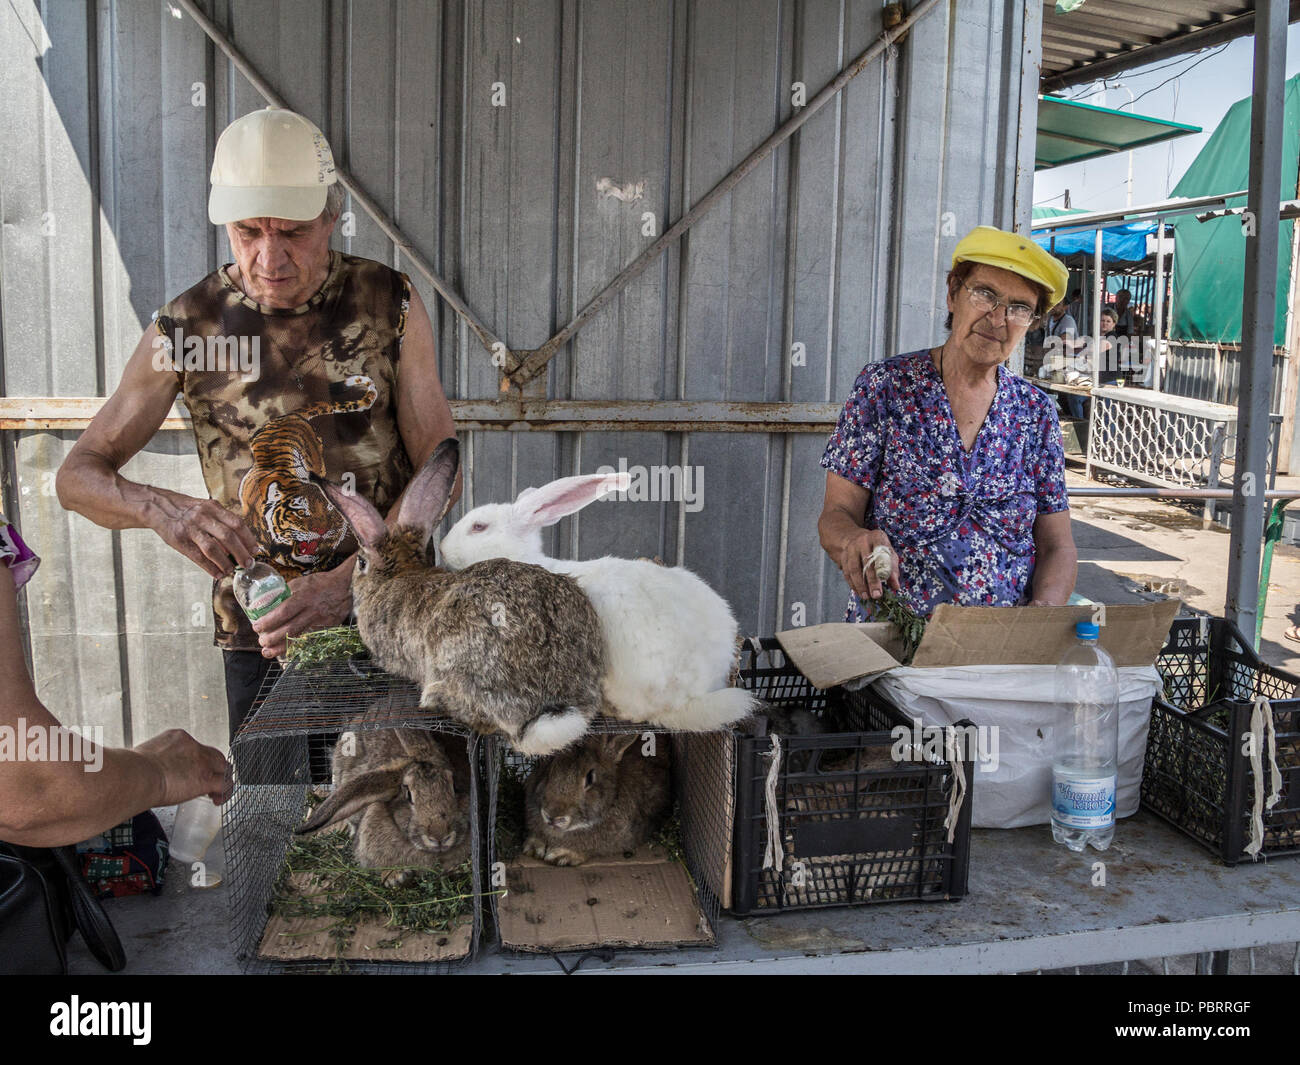 DNIPROPETROVSK, UKRAINE - AUGUST 15, 2018: Old people selling living rabbits in cages on Dniepropetrovsk main market, slaviansky, during a warm aftern Stock Photo